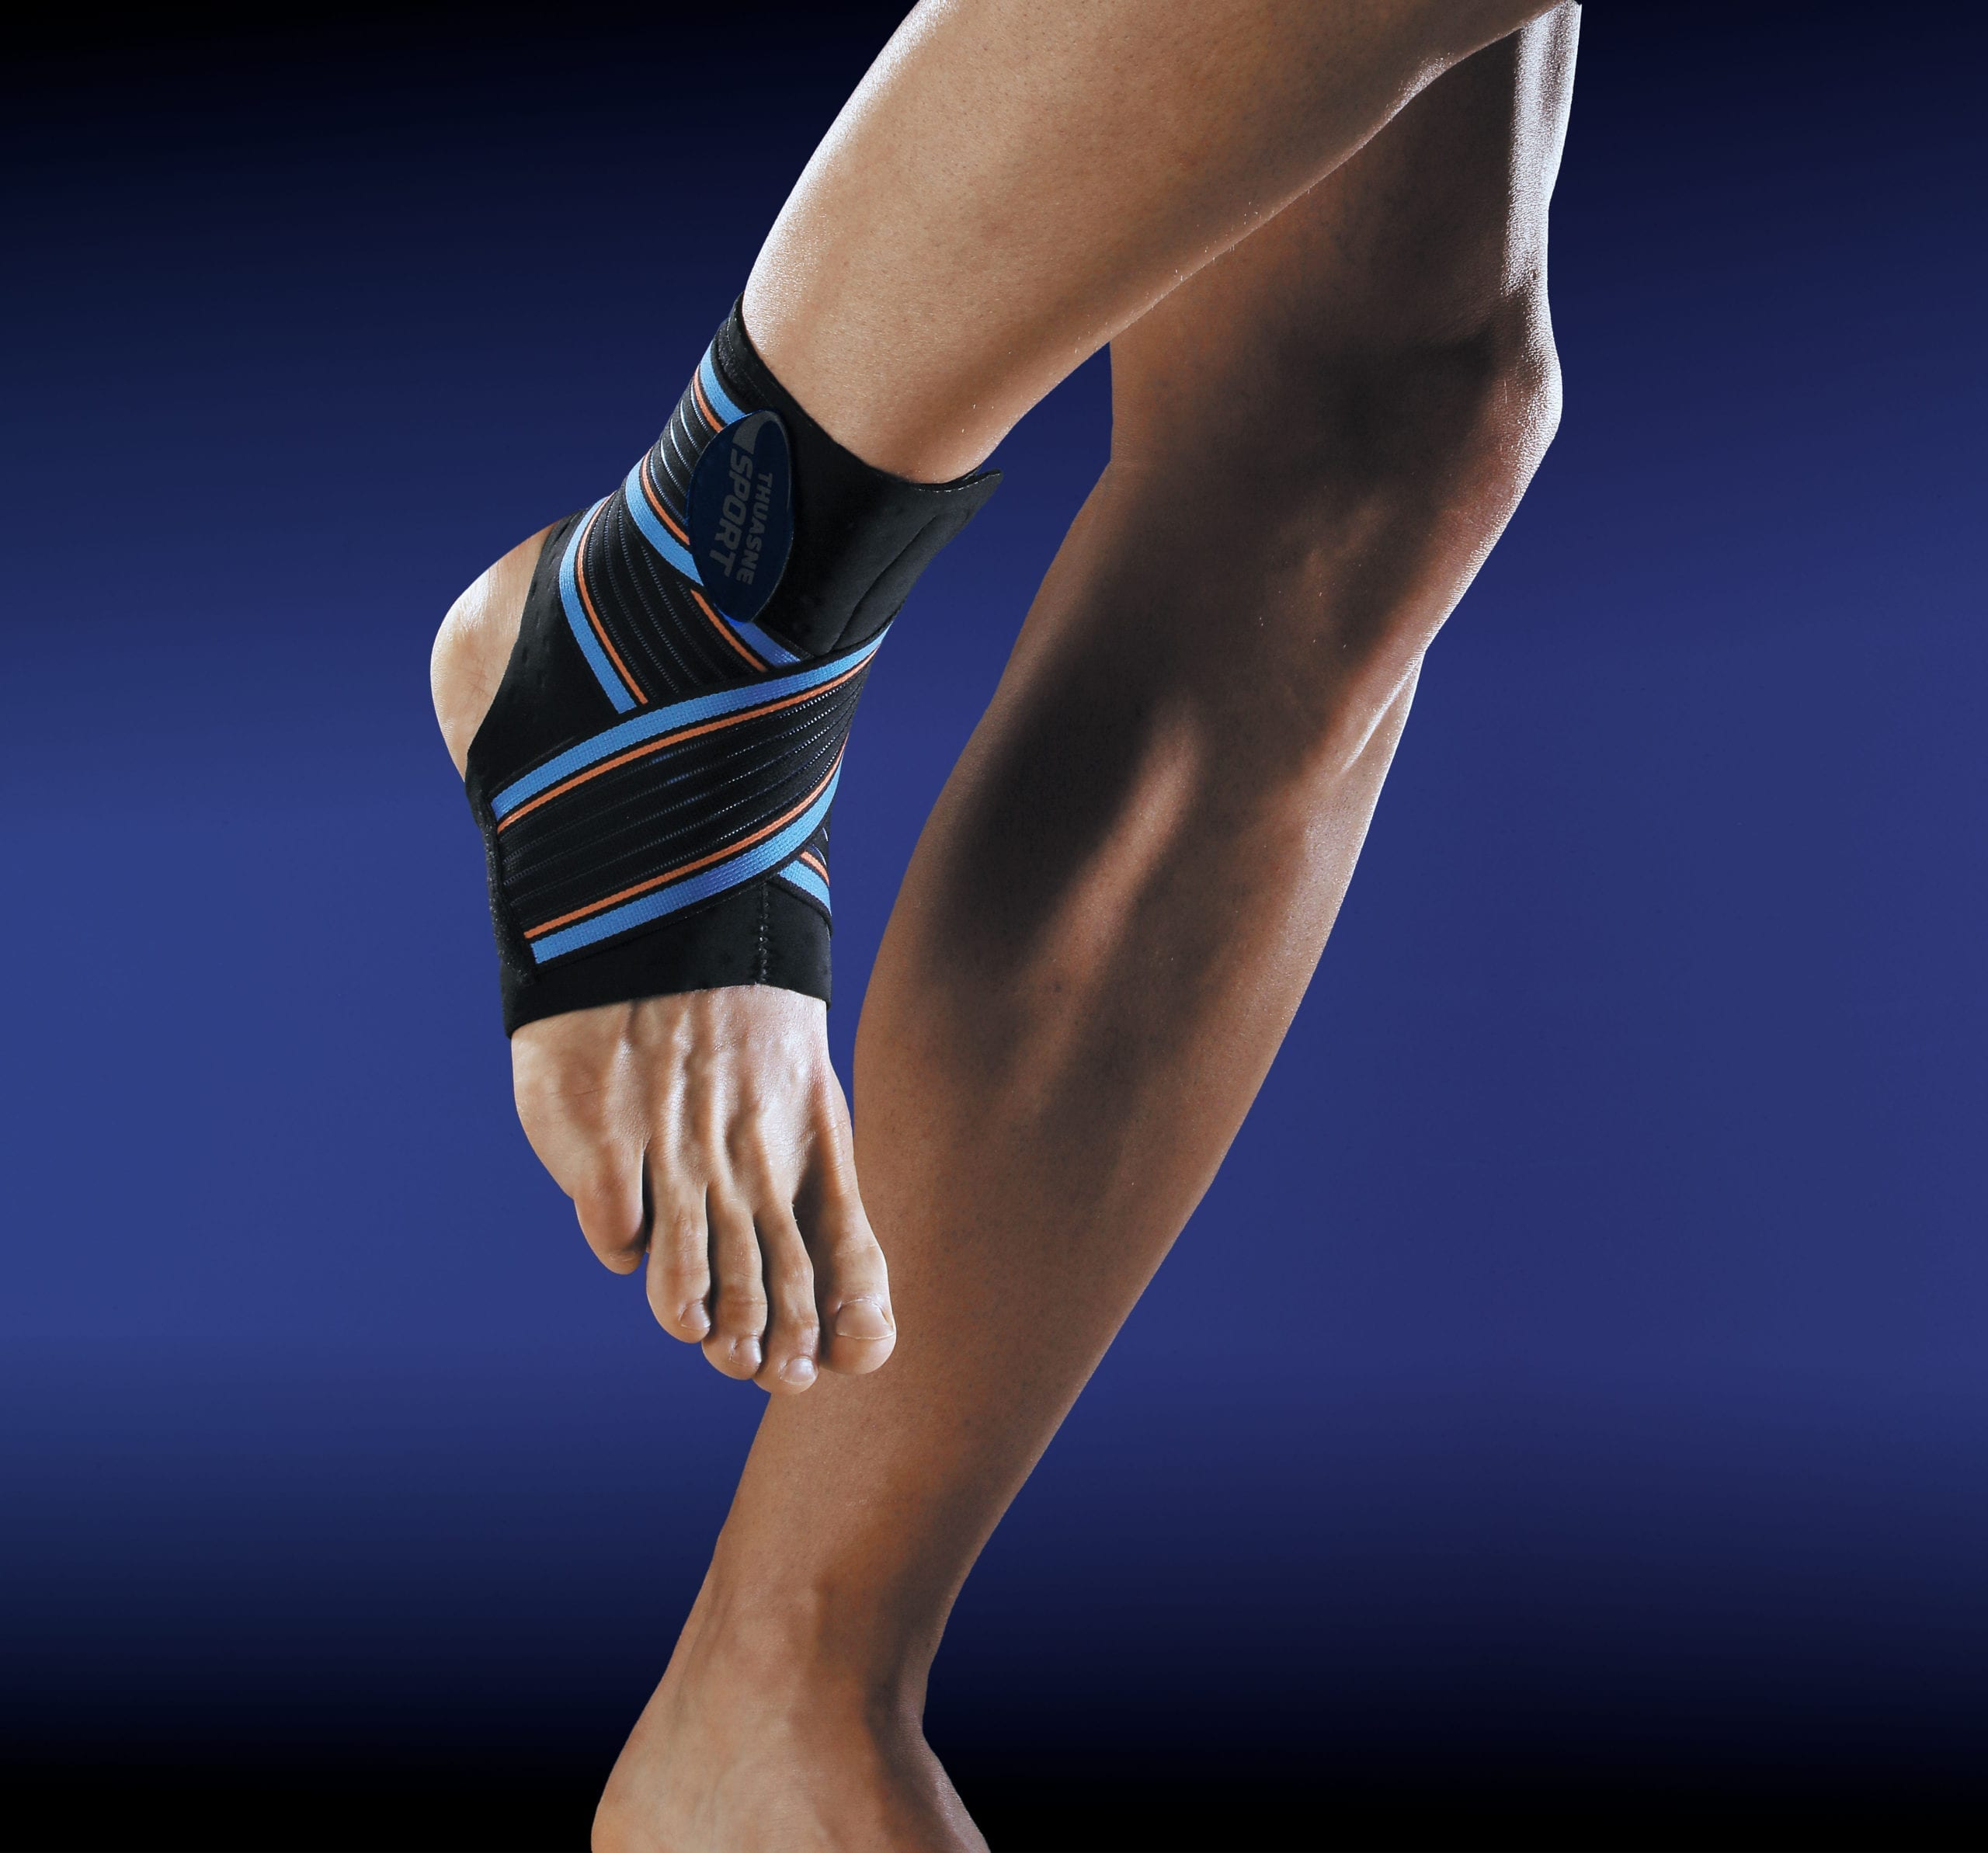 A person wearing a Thuasne Ankle Strapping Support